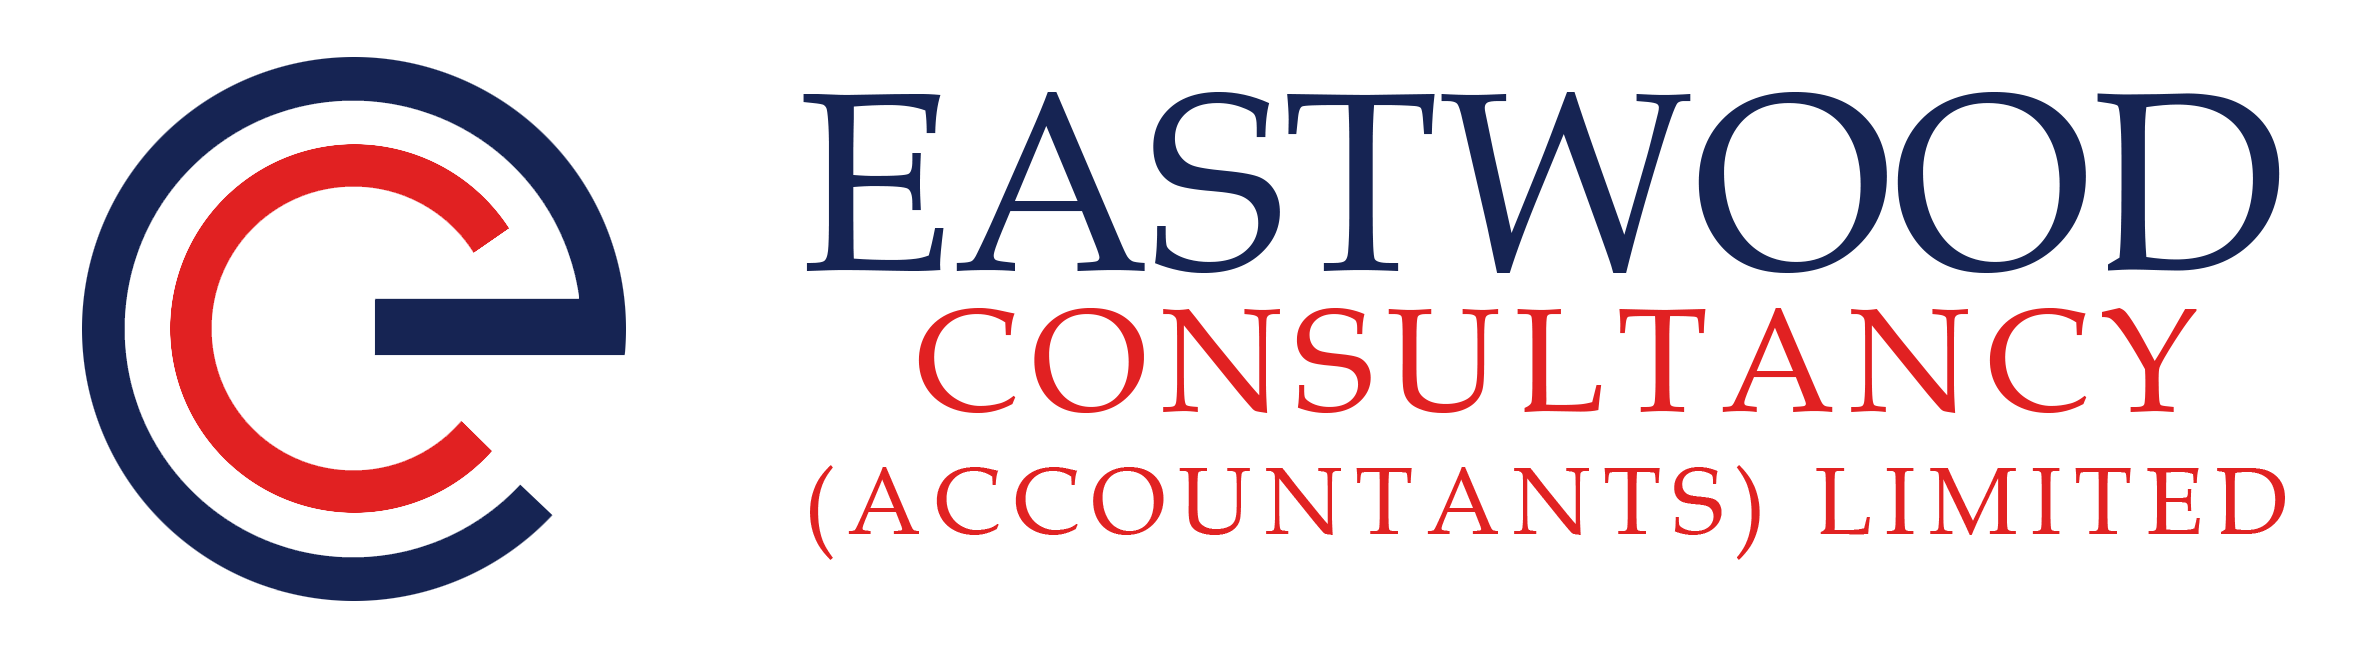 Eastwood Consultancy Logo PNG